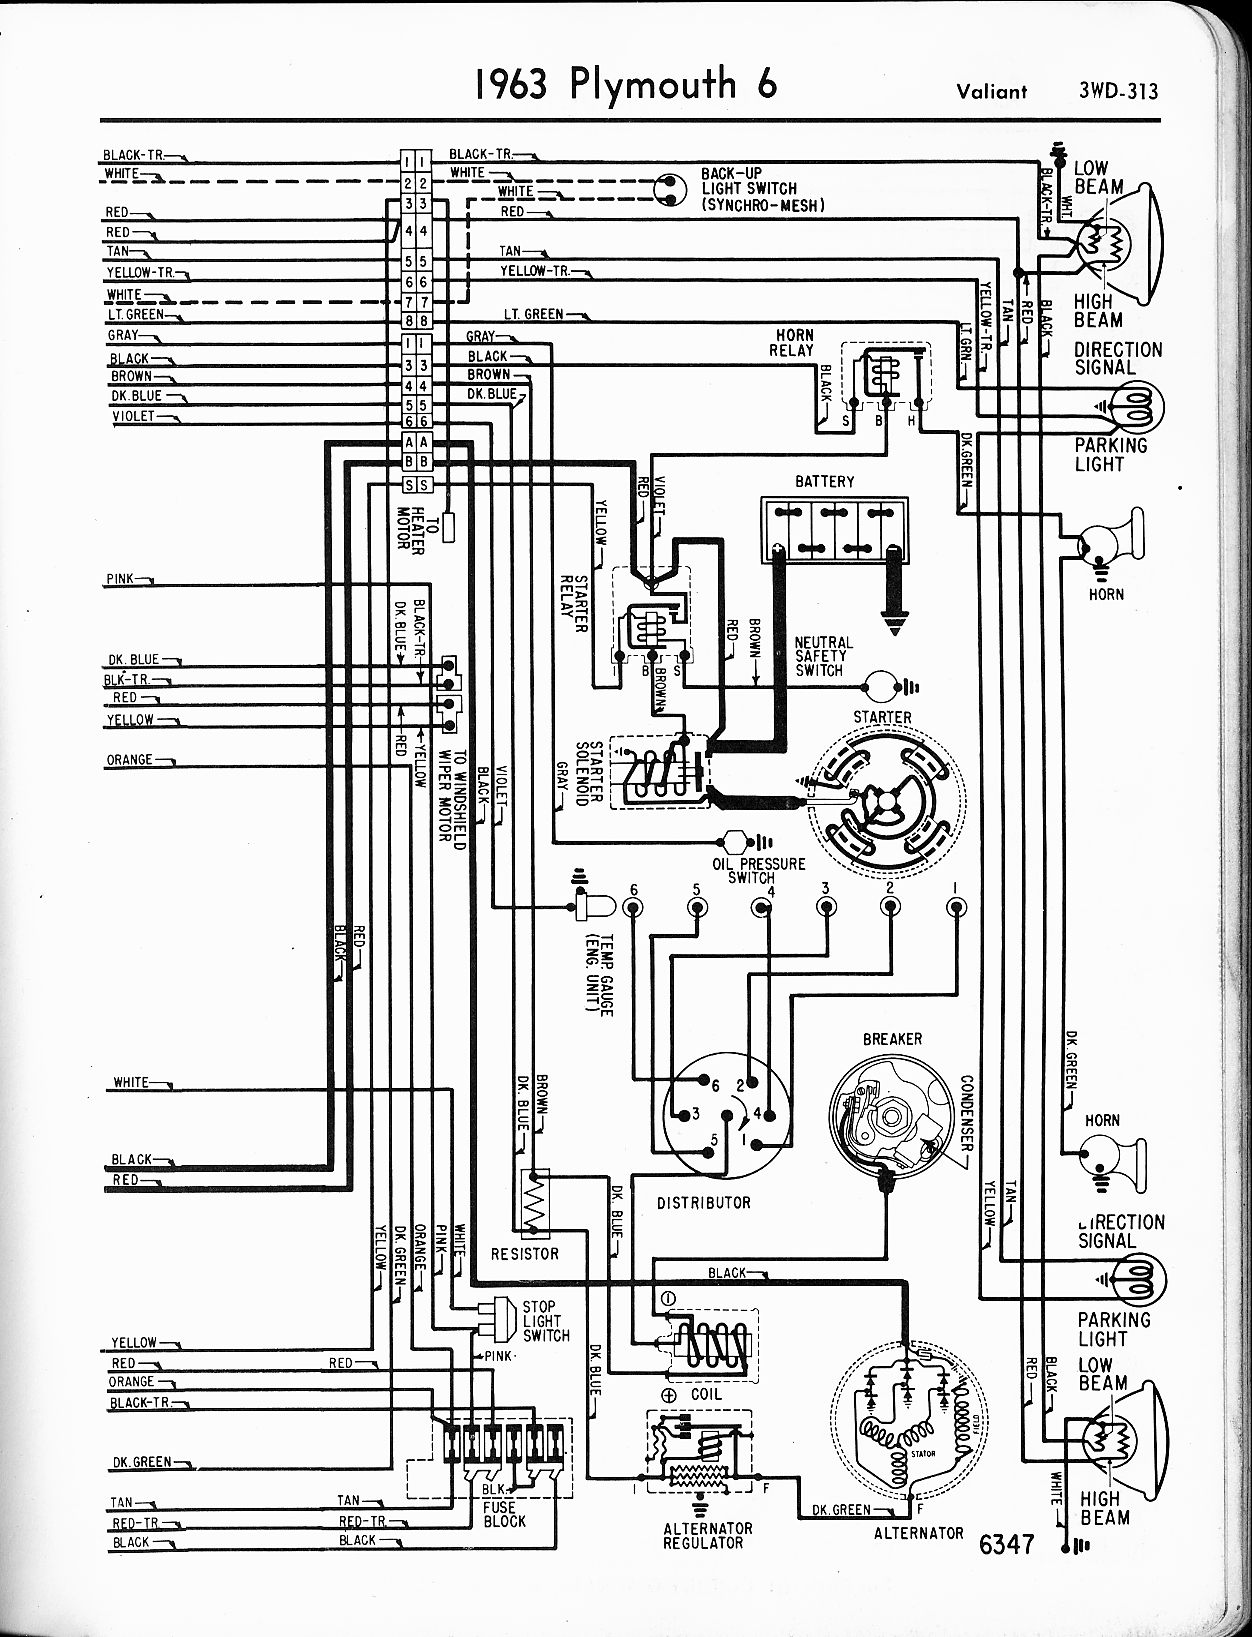 PlymouthIndex on 1992 Buick Lesabre Radio Wiring Diagram